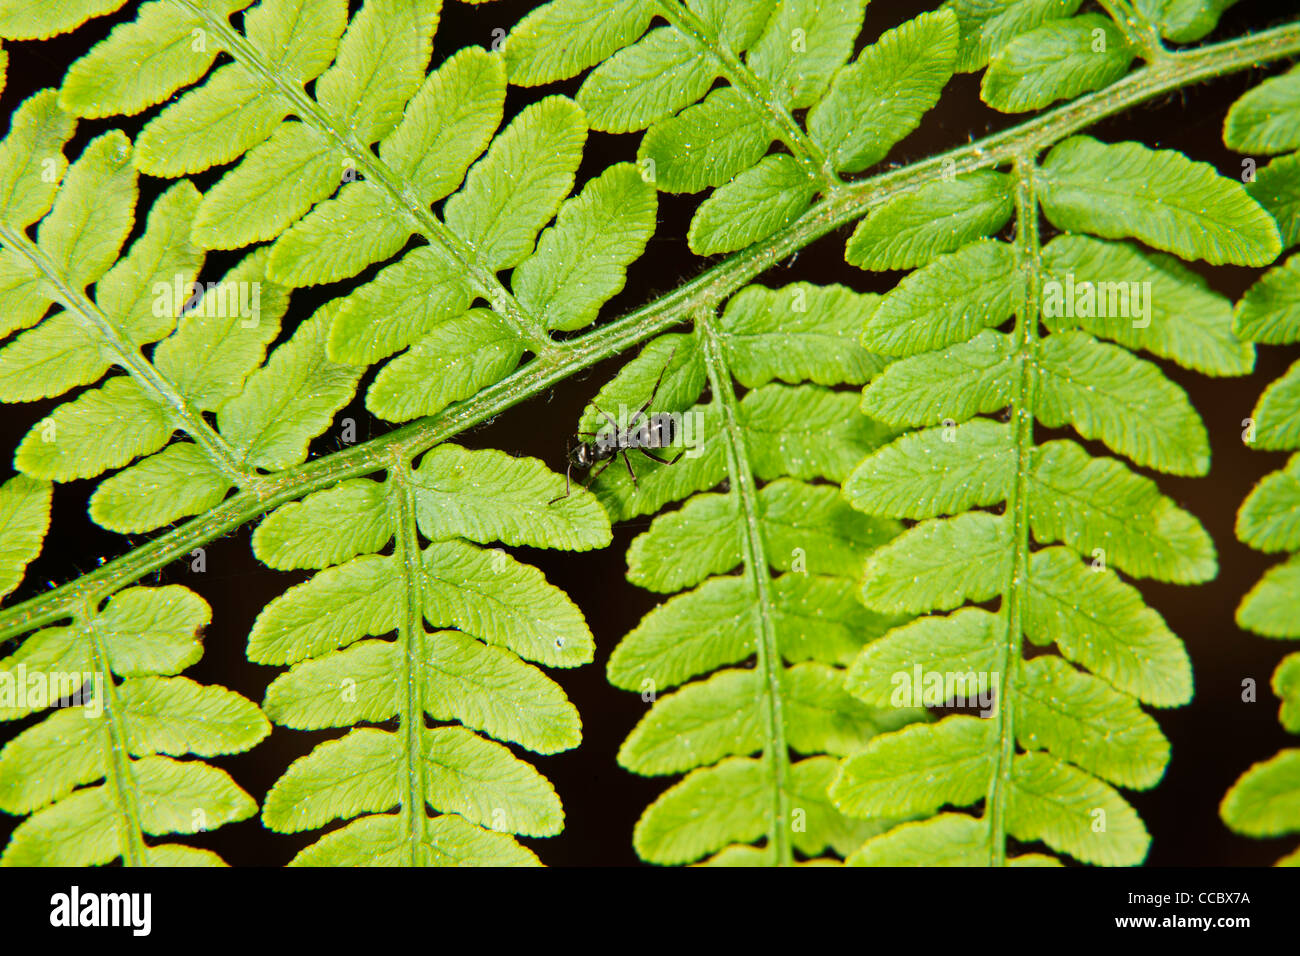 Ant crawling on fern frond - Stock Image